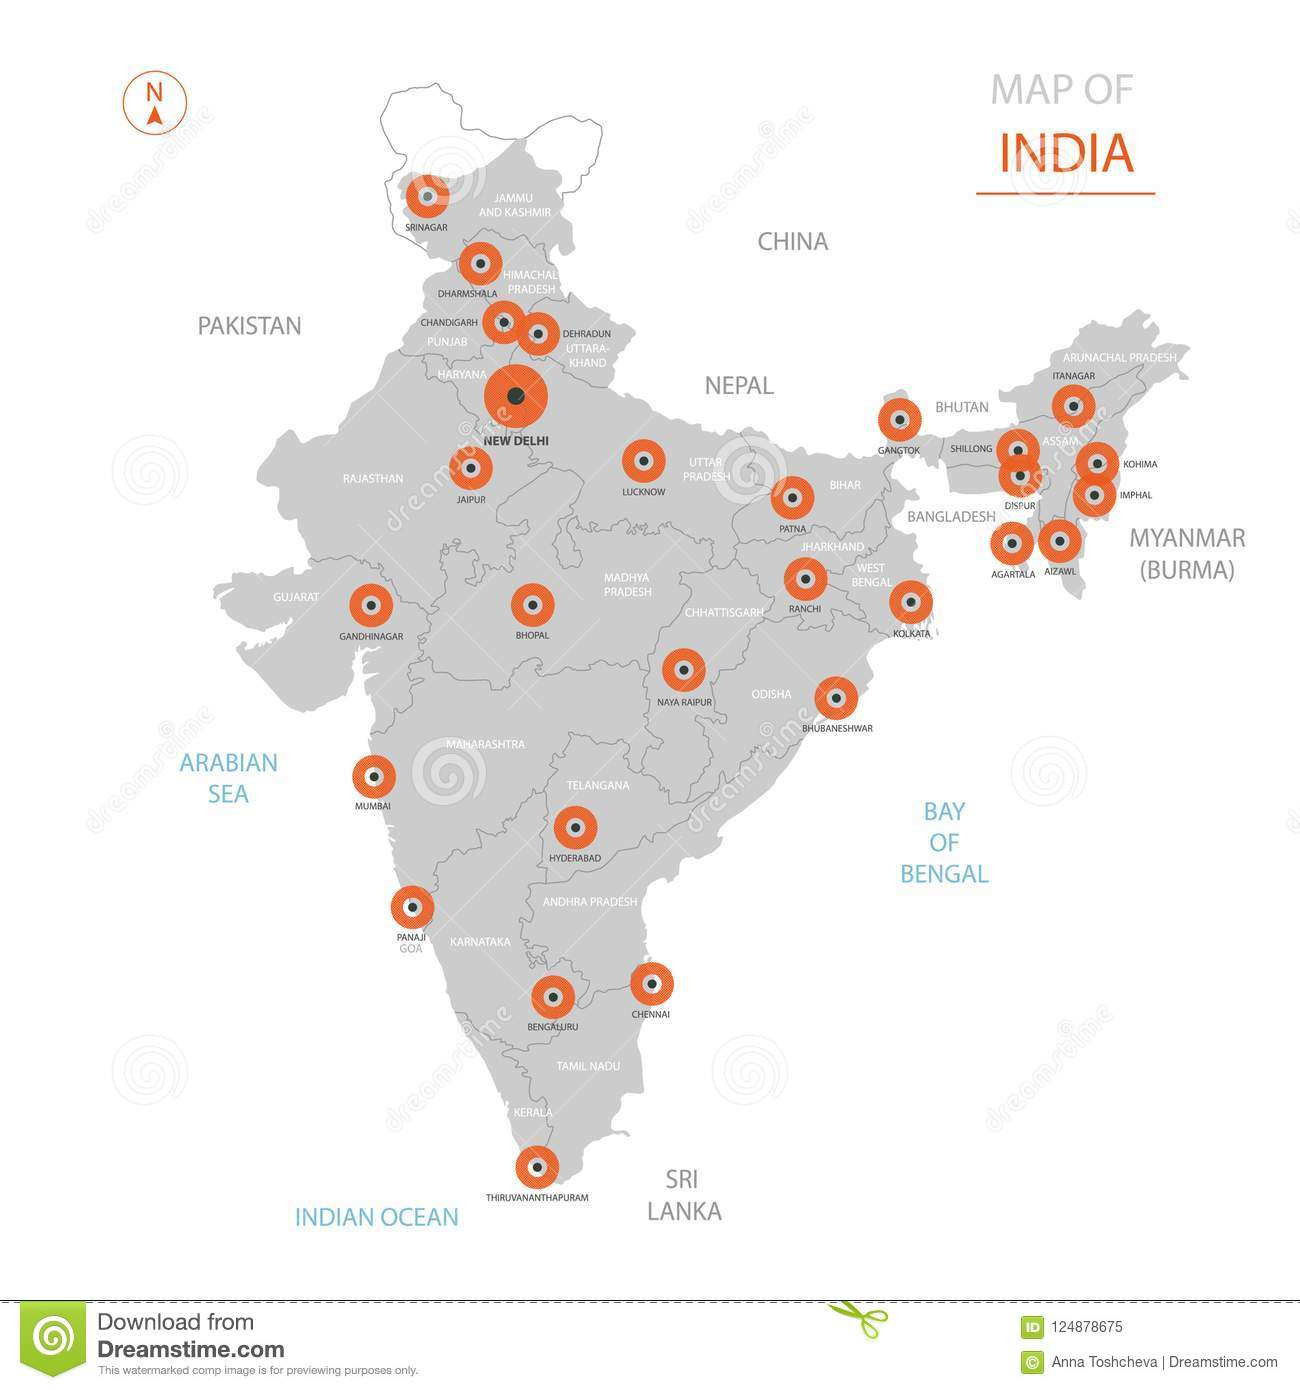 India Map With Administrative Divisions. Stock Vector - Illustration on india sri lanka, india map rajasthan, india and surrounding countries map, bombay asia map cities, india and all its cities, india cities list, india map outline, indians in india cities, india states, india travel, japan map cities, india political map 2013, india china map, india and pakistan map, india language, india map mountains, india physical map, india biggest cities map, india major cities, india map 1200 pixels,